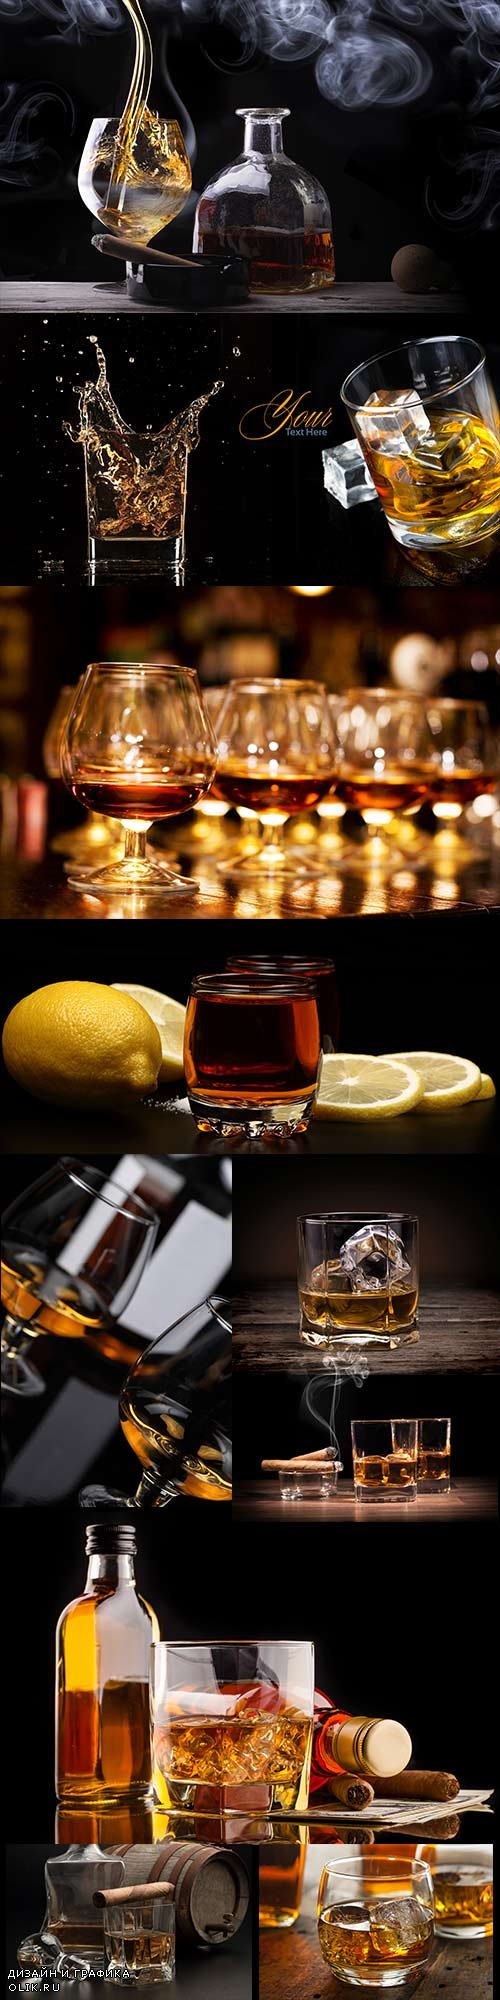 Strong drinks - Brandy and whiskey